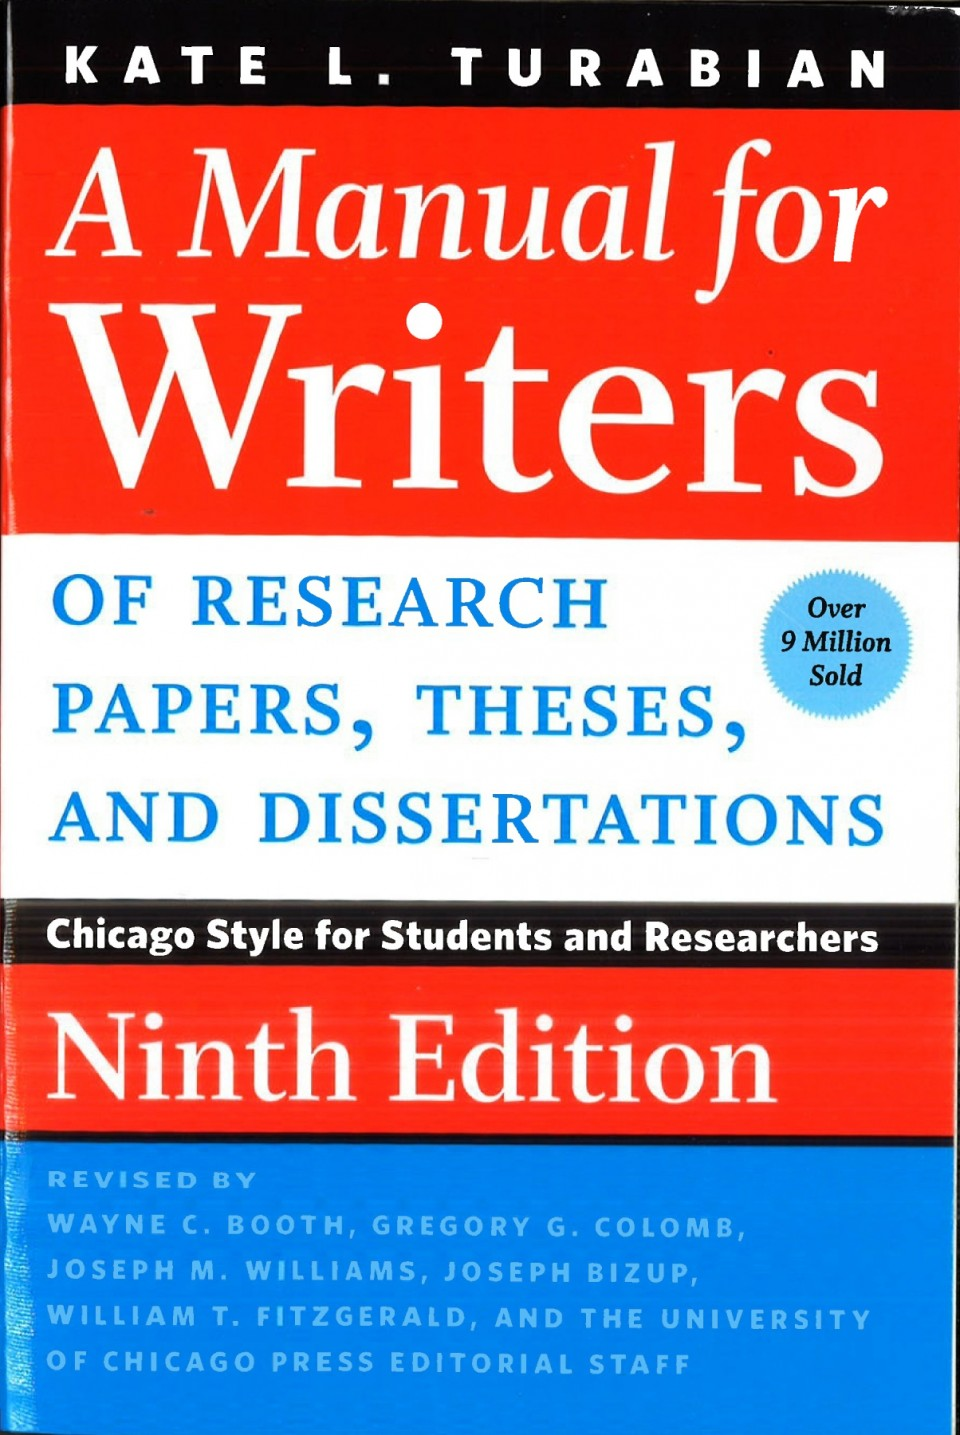 008 Research Paper Manual For Writers Of Papers Theses And Sensational A Dissertations Ed. 8 8th Edition Ninth Pdf 960